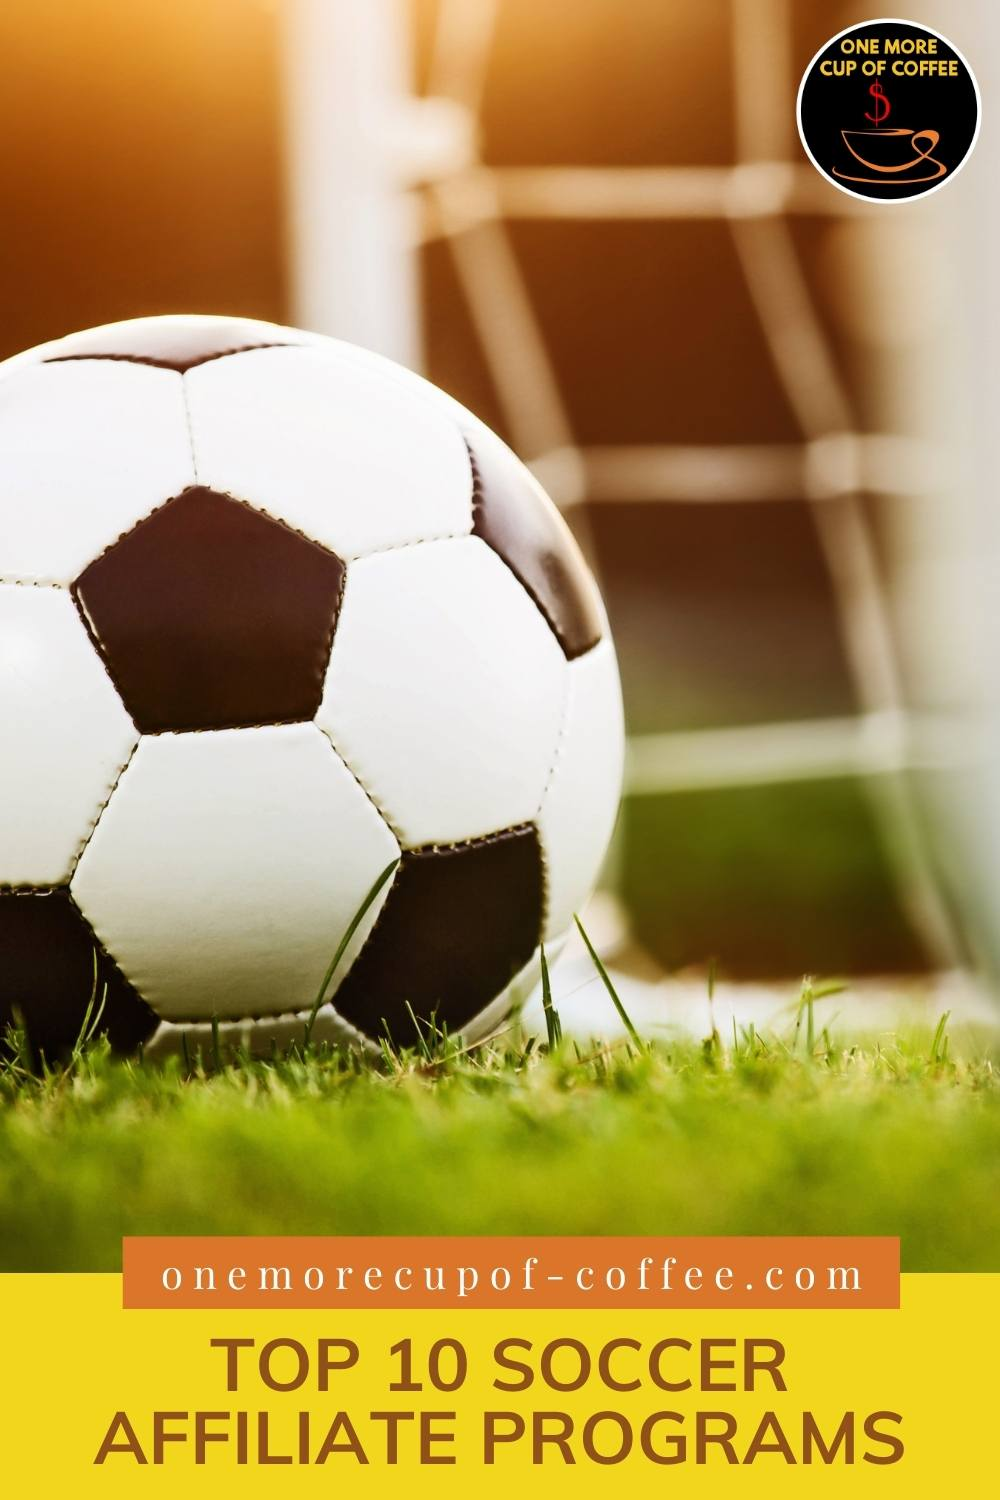 """closeup image of soccer ball on the field with the goal at the back; with text overlay at the bottom in yellow banner """"Top 10 Soccer Affiliate Programs"""""""